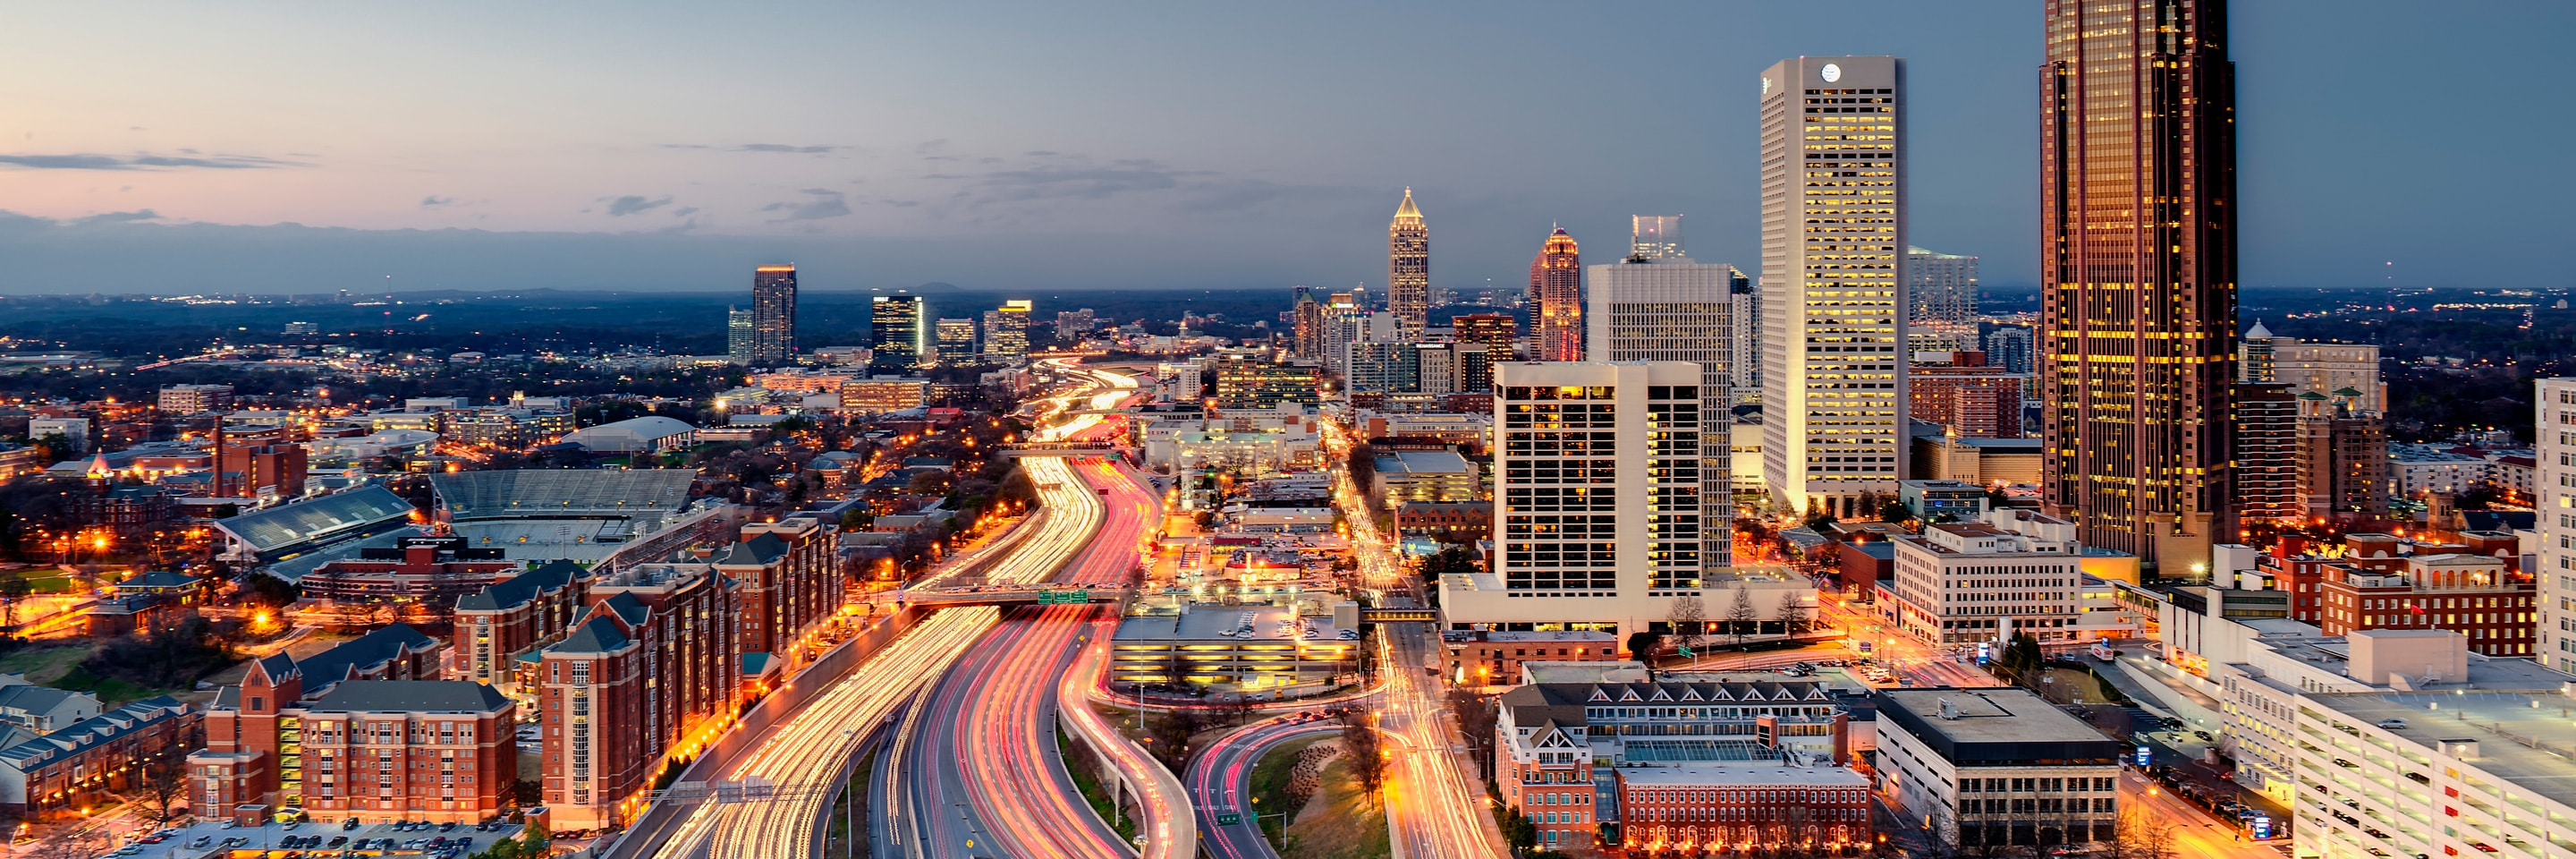 Hotels in Atlanta